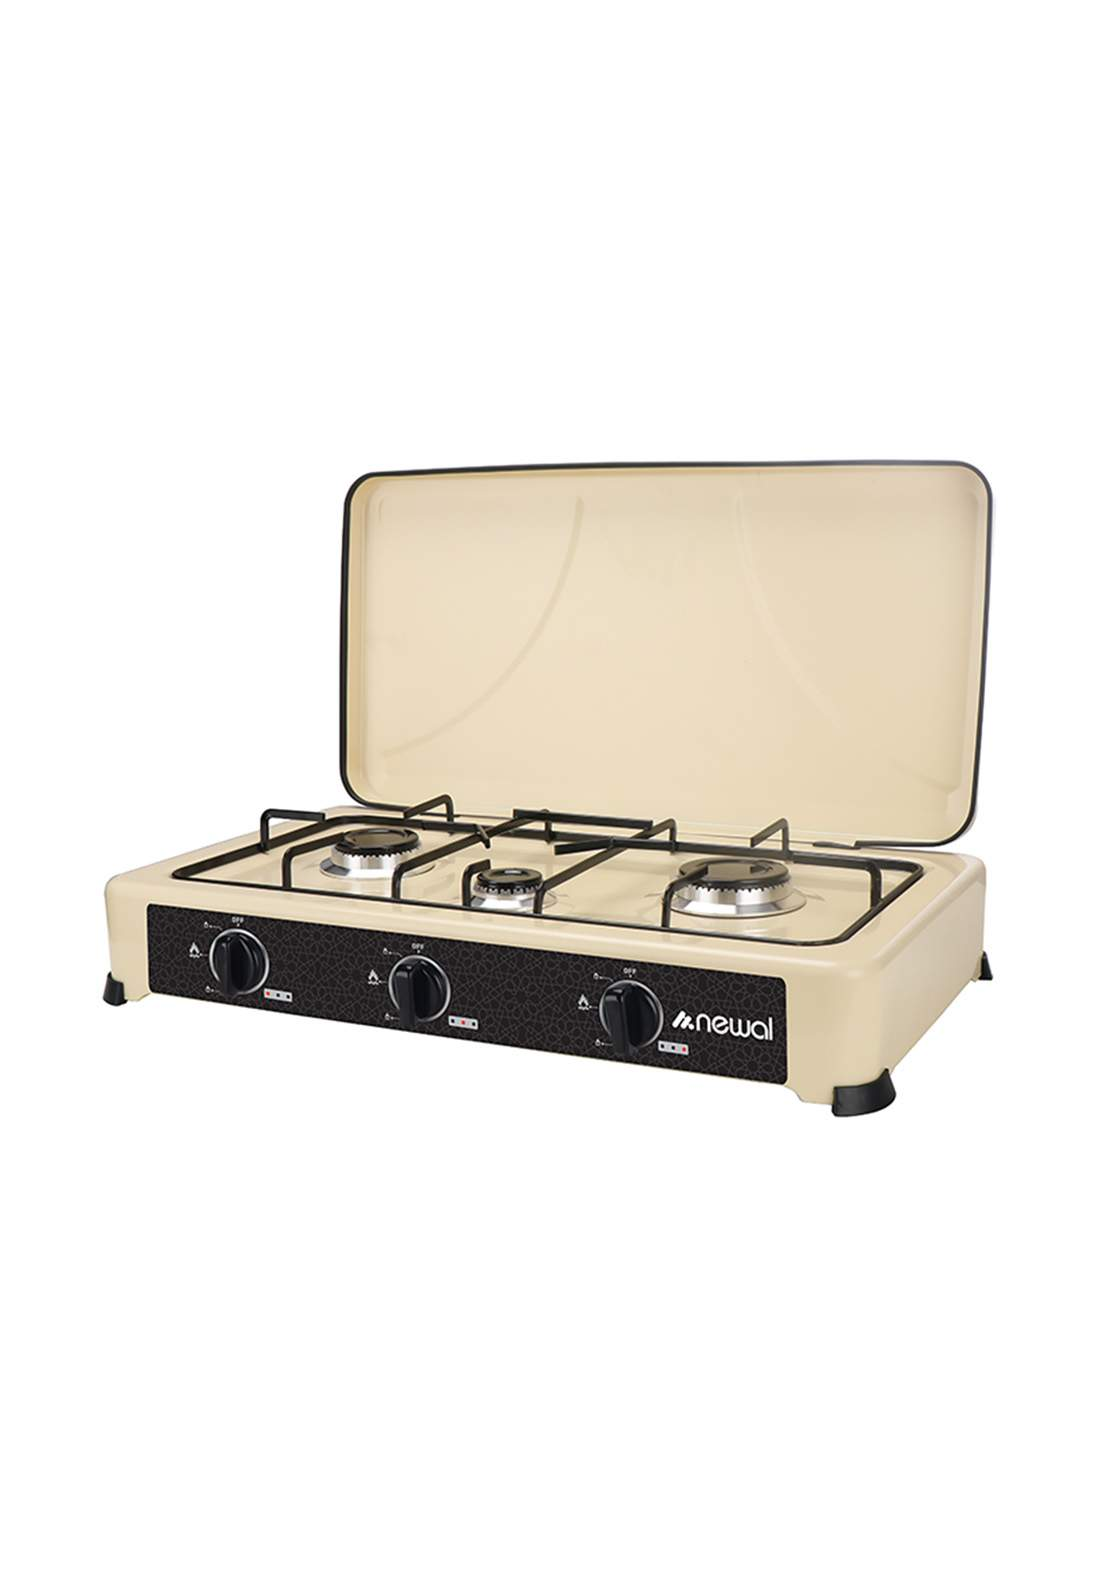 Newal Hob-203-04 Tabletop Cooker 3 Cooking Places  طباخ منضدي